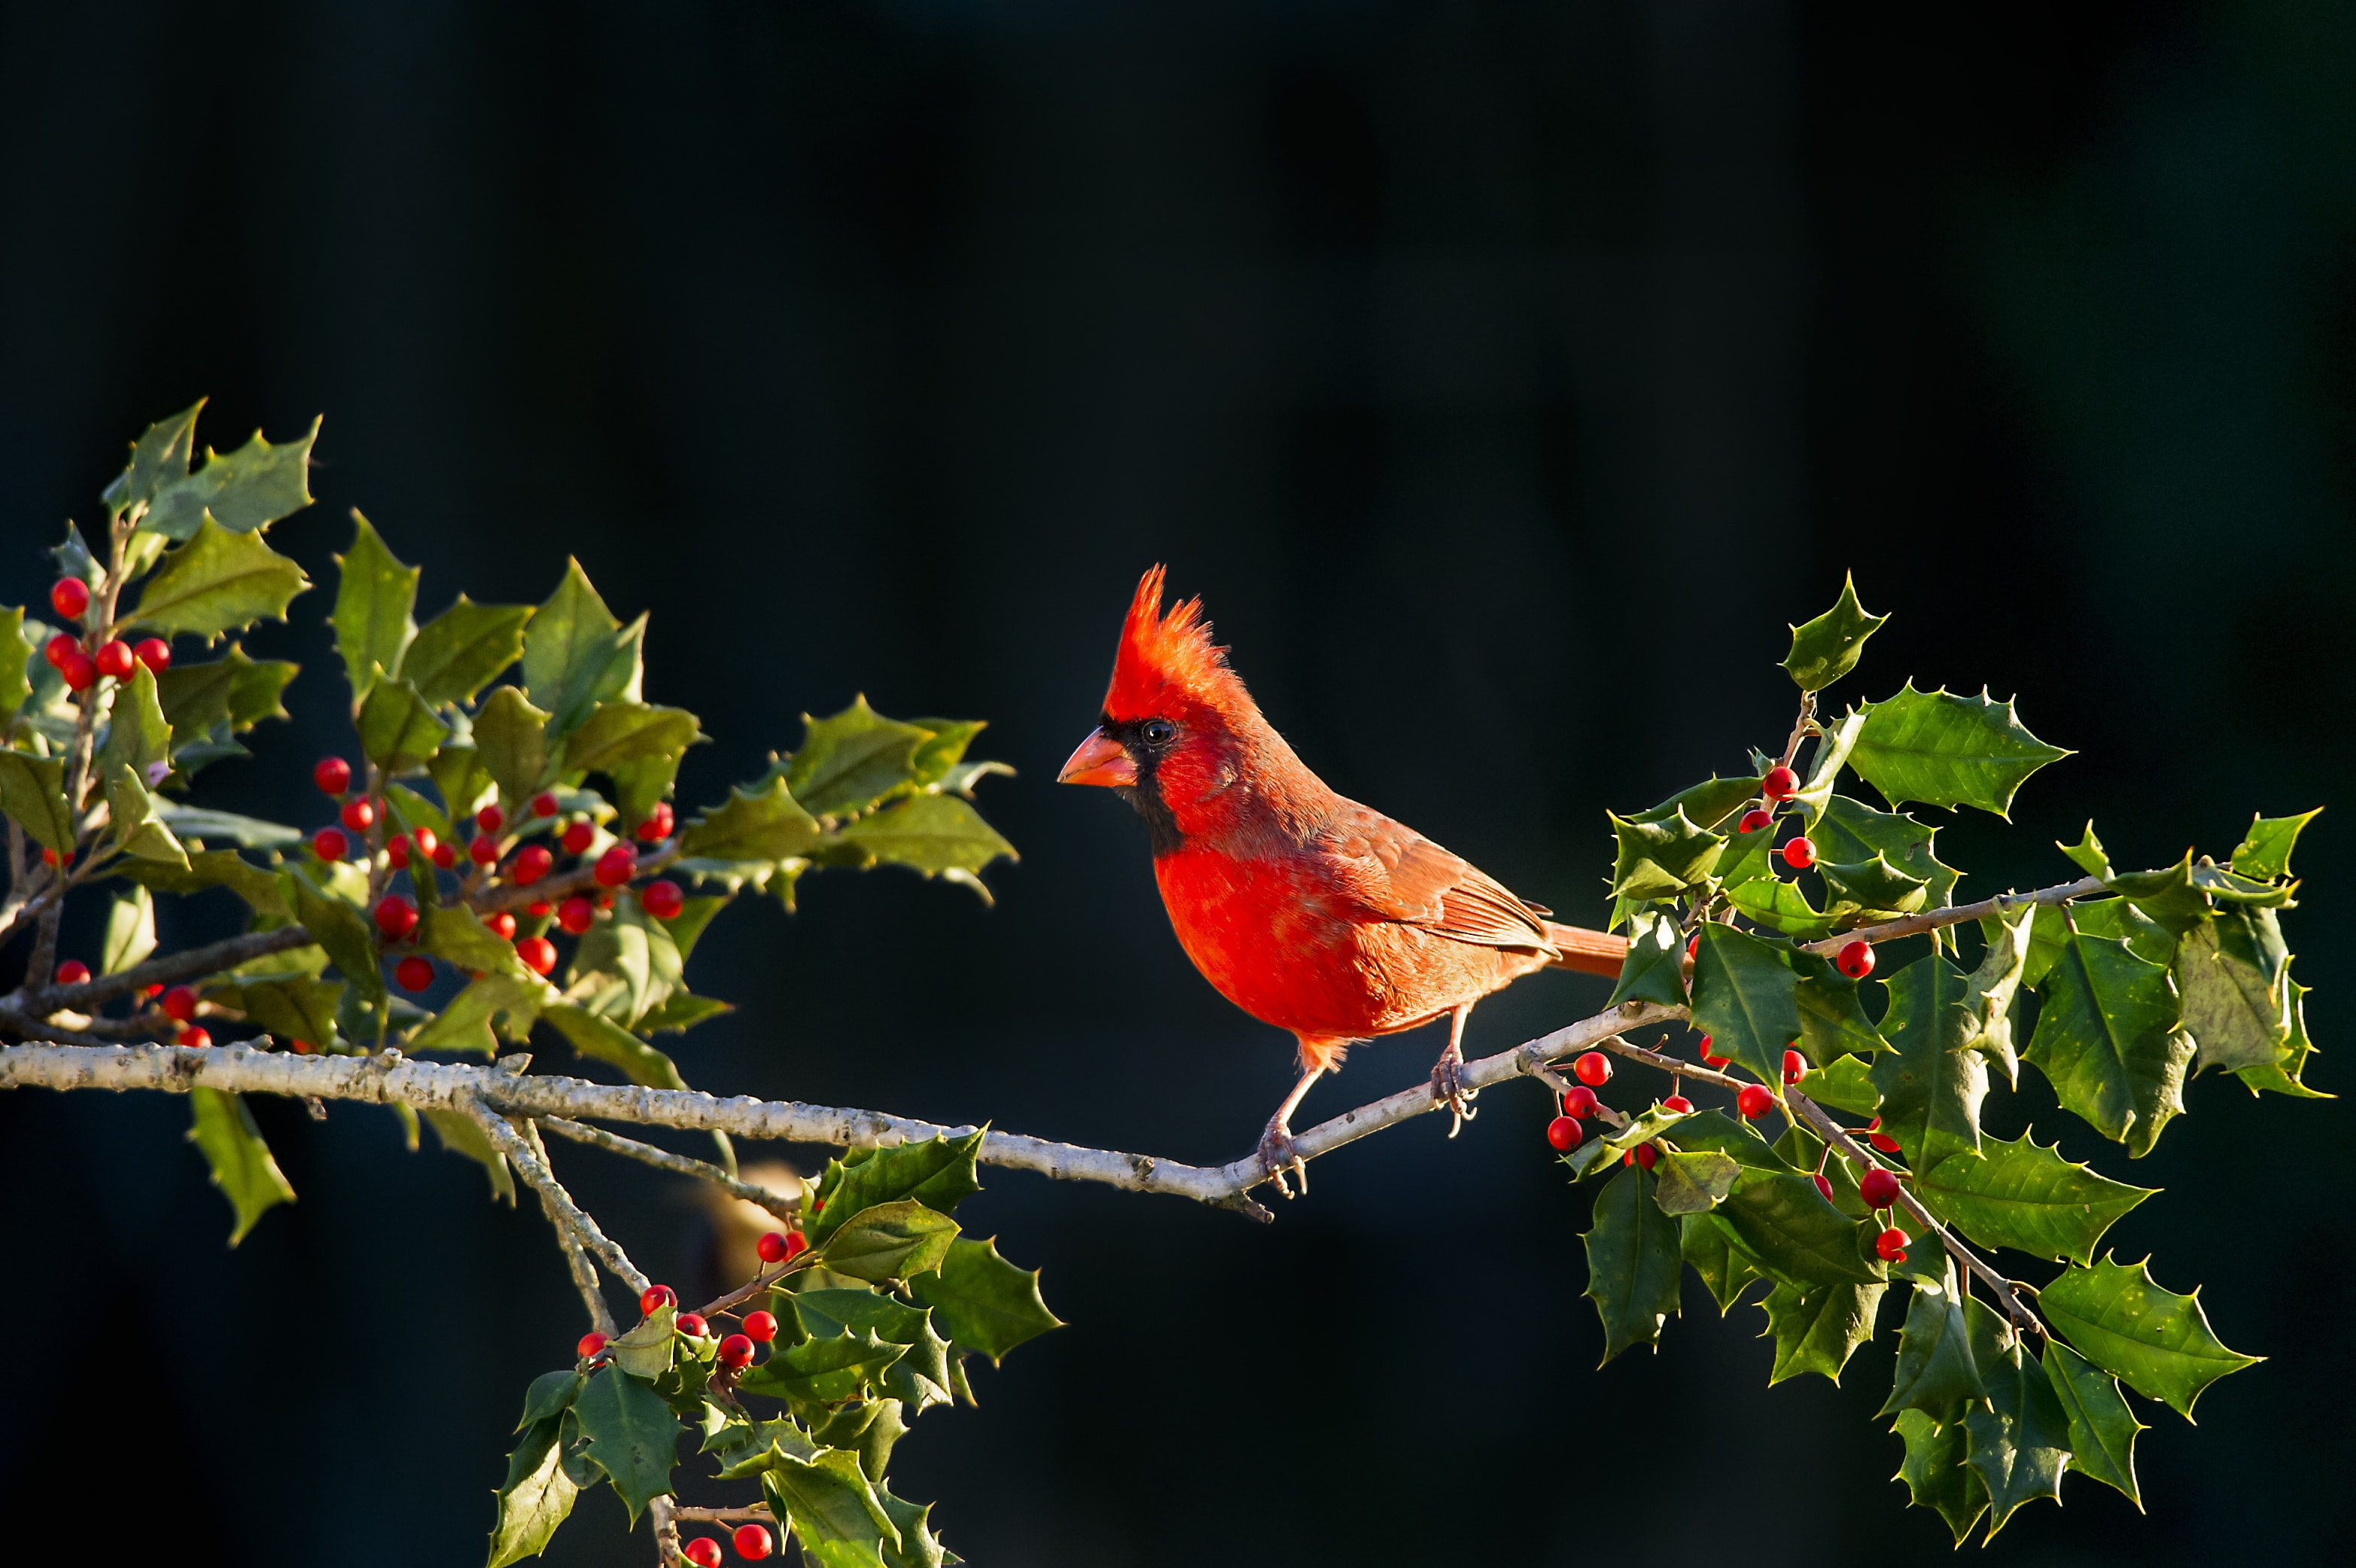 shallow focus of Cardinal bird on tree branch